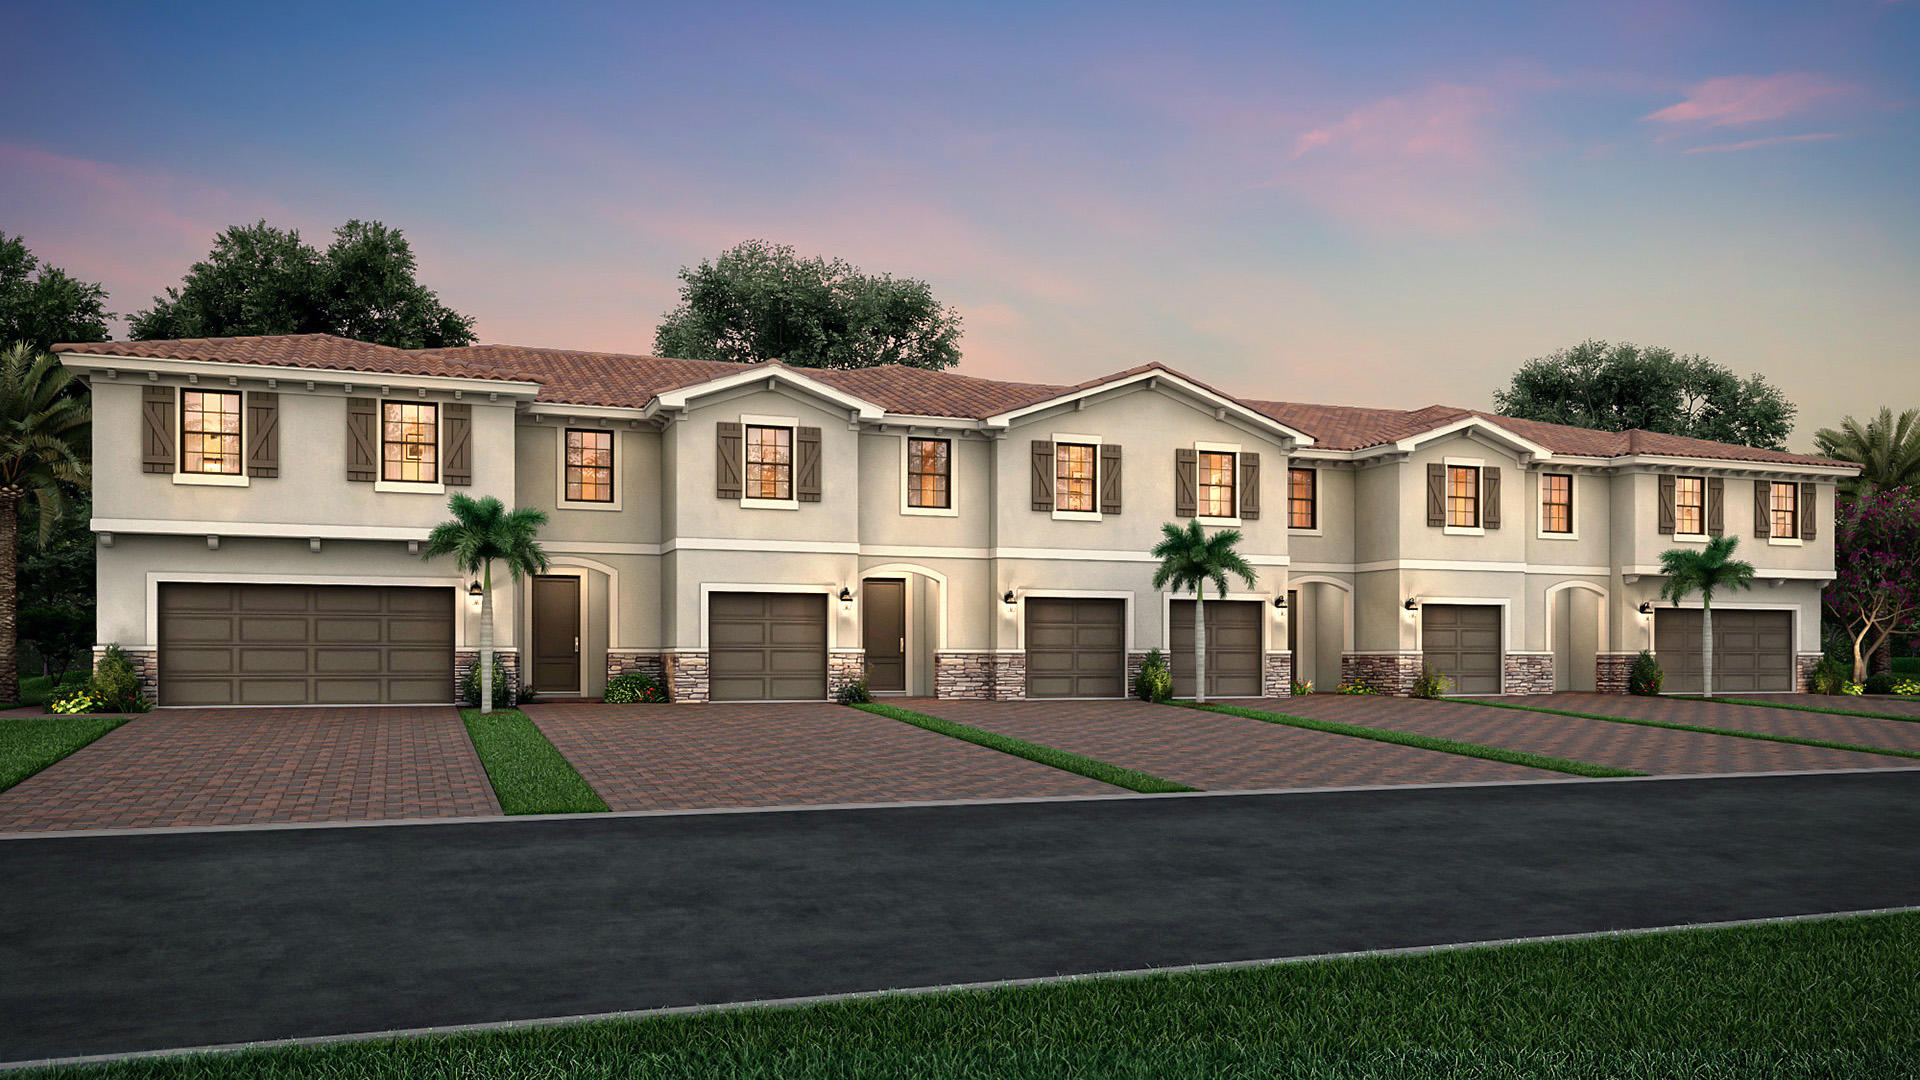 Photo of 1011 Willow Place, Riviera Beach, FL 33410